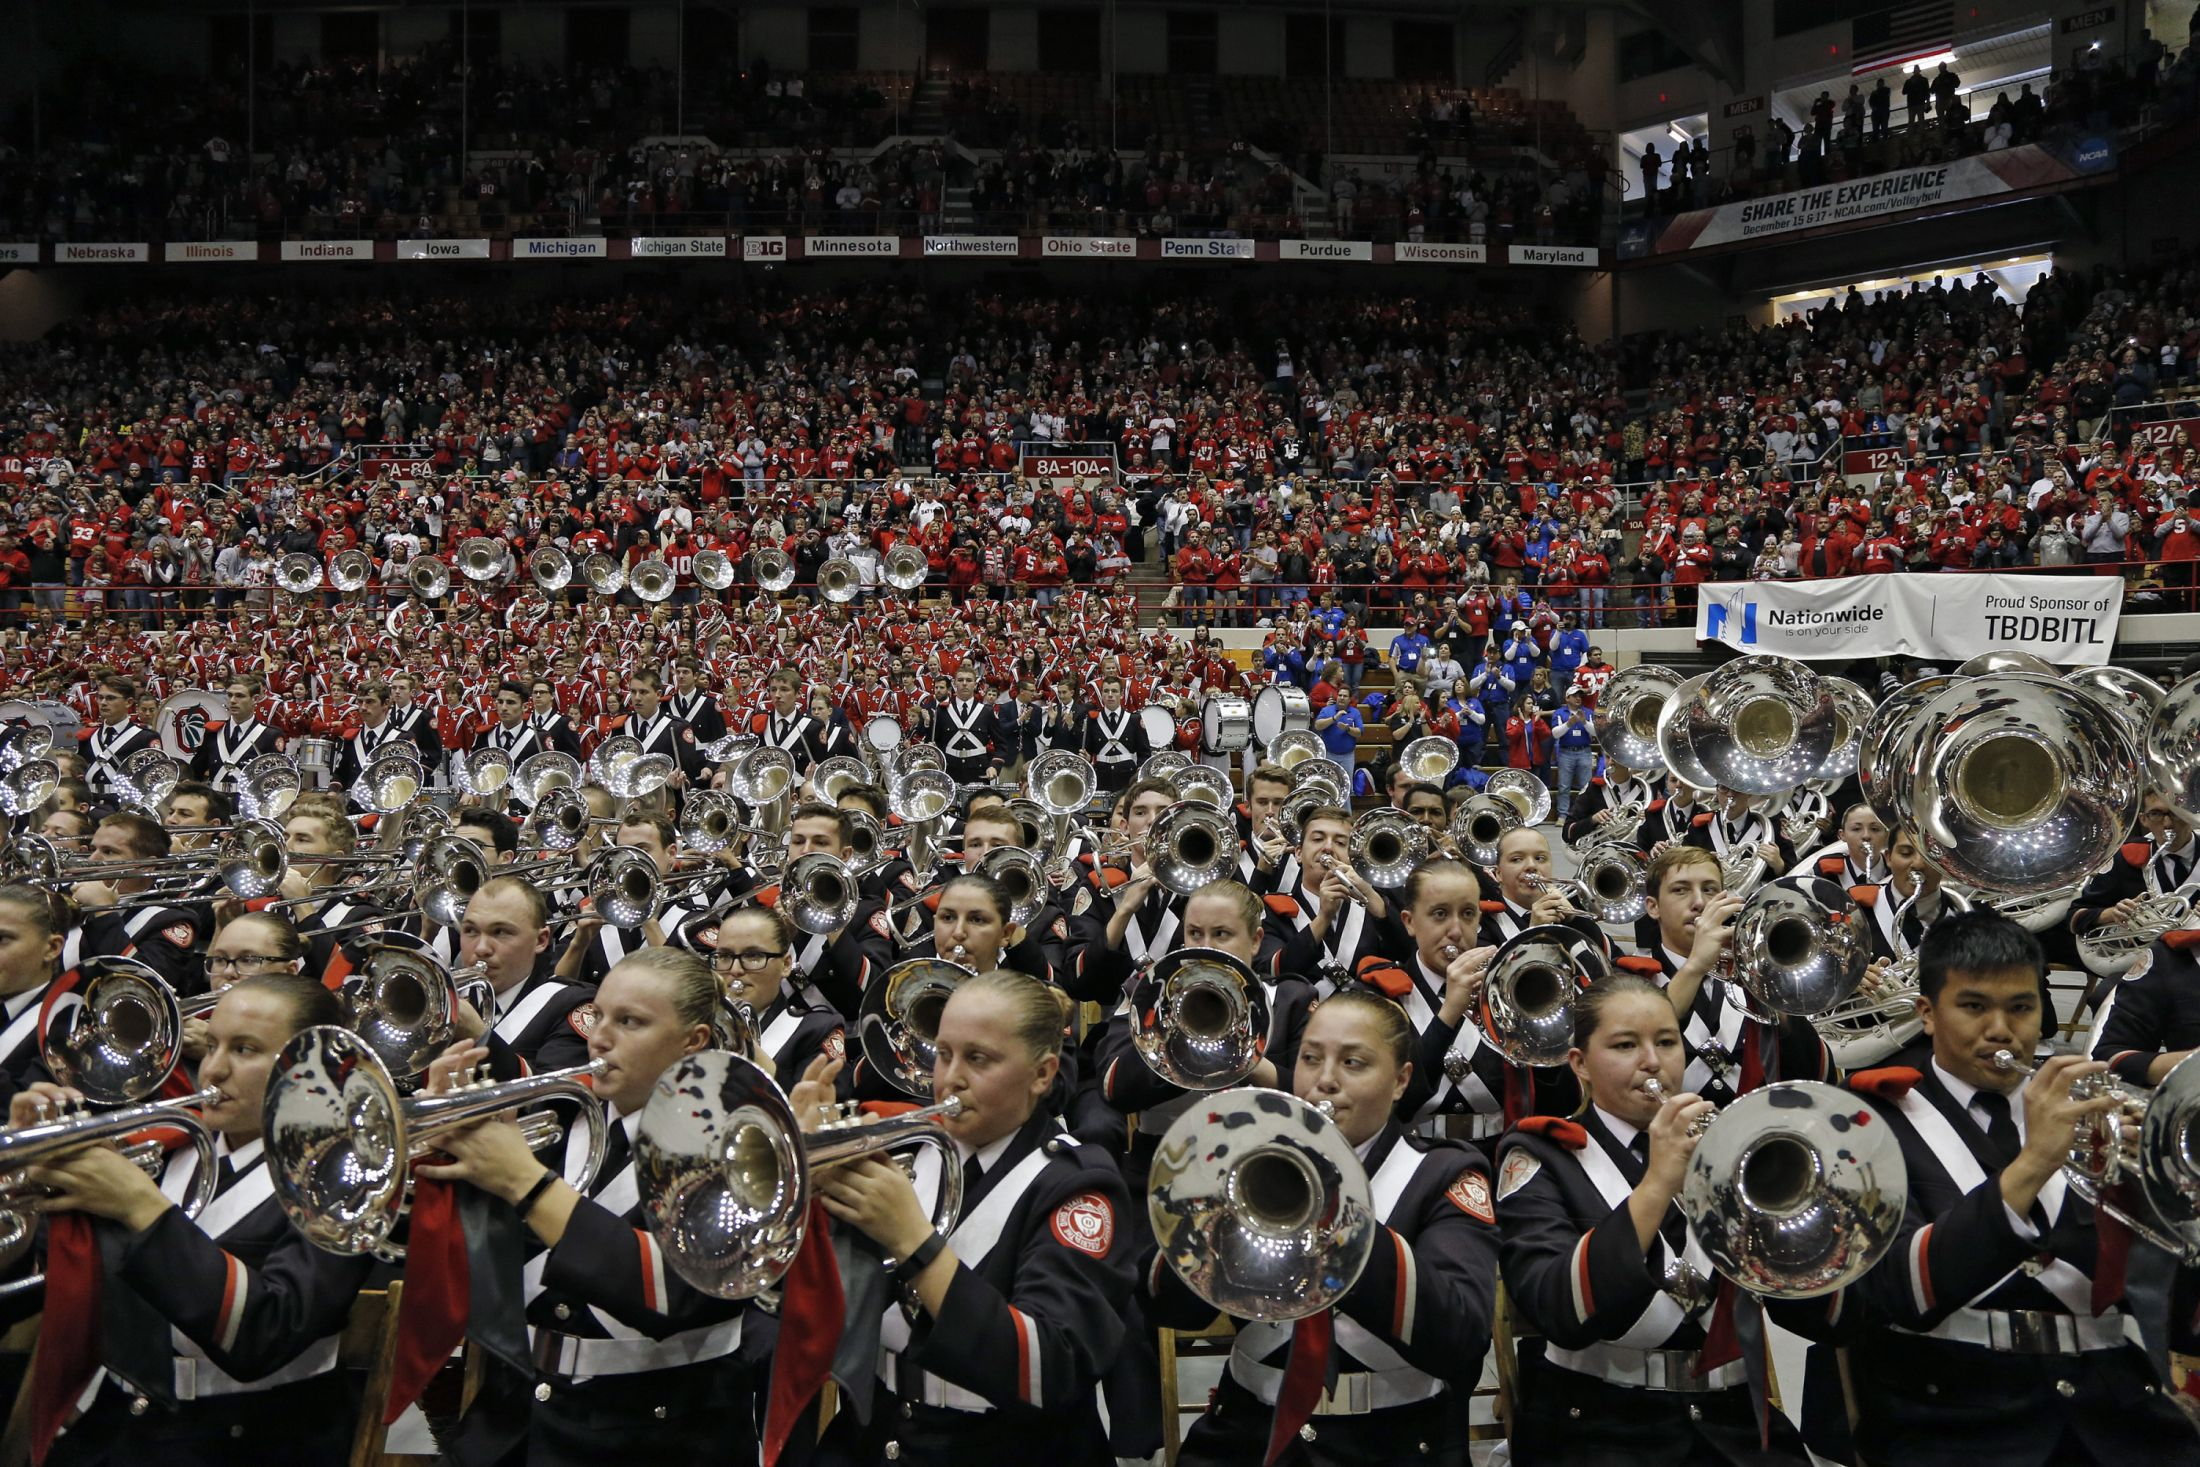 Ohio State Buckeyes marching band plays during the skull session at St. John Arena before the game against Michigan Wolverines in Columbus, Ohio on November 26, 2016.  (Kyle Robertson /  Columbus Dispatch)